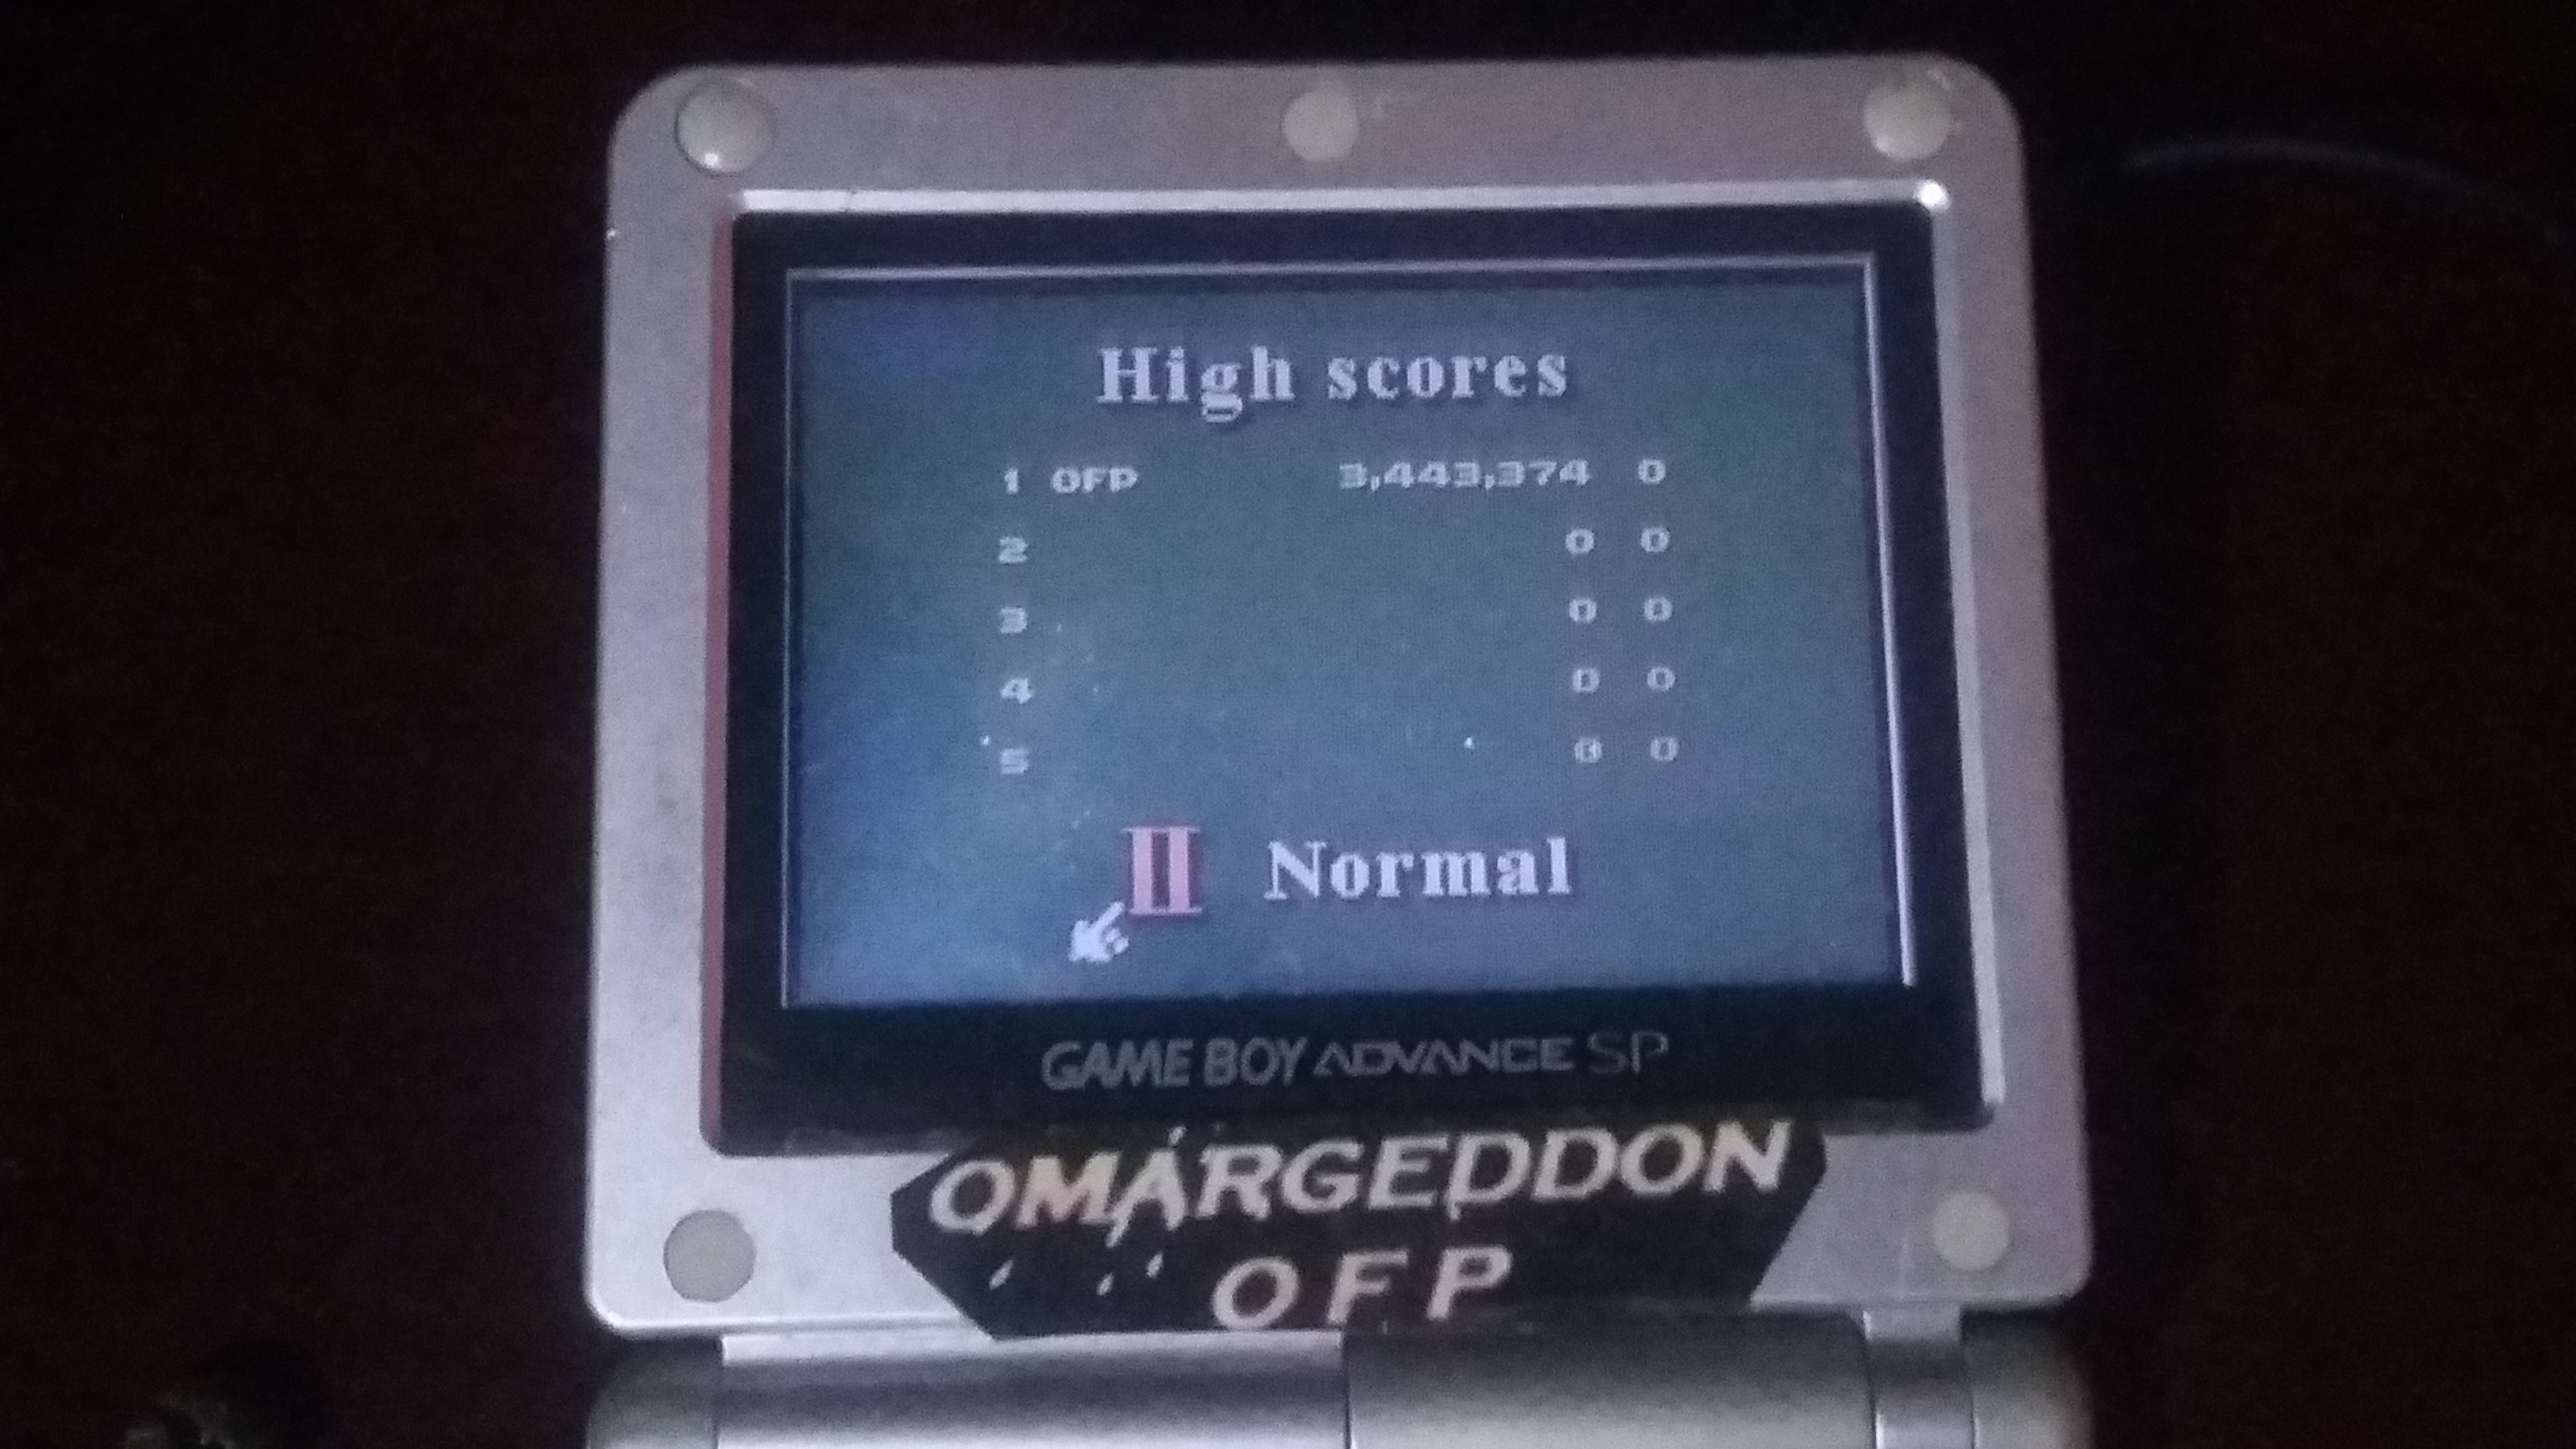 omargeddon: 3D Ultra Pinball Thrillride: Normal (Game Boy Color) 3,443,374 points on 2018-09-23 16:36:59